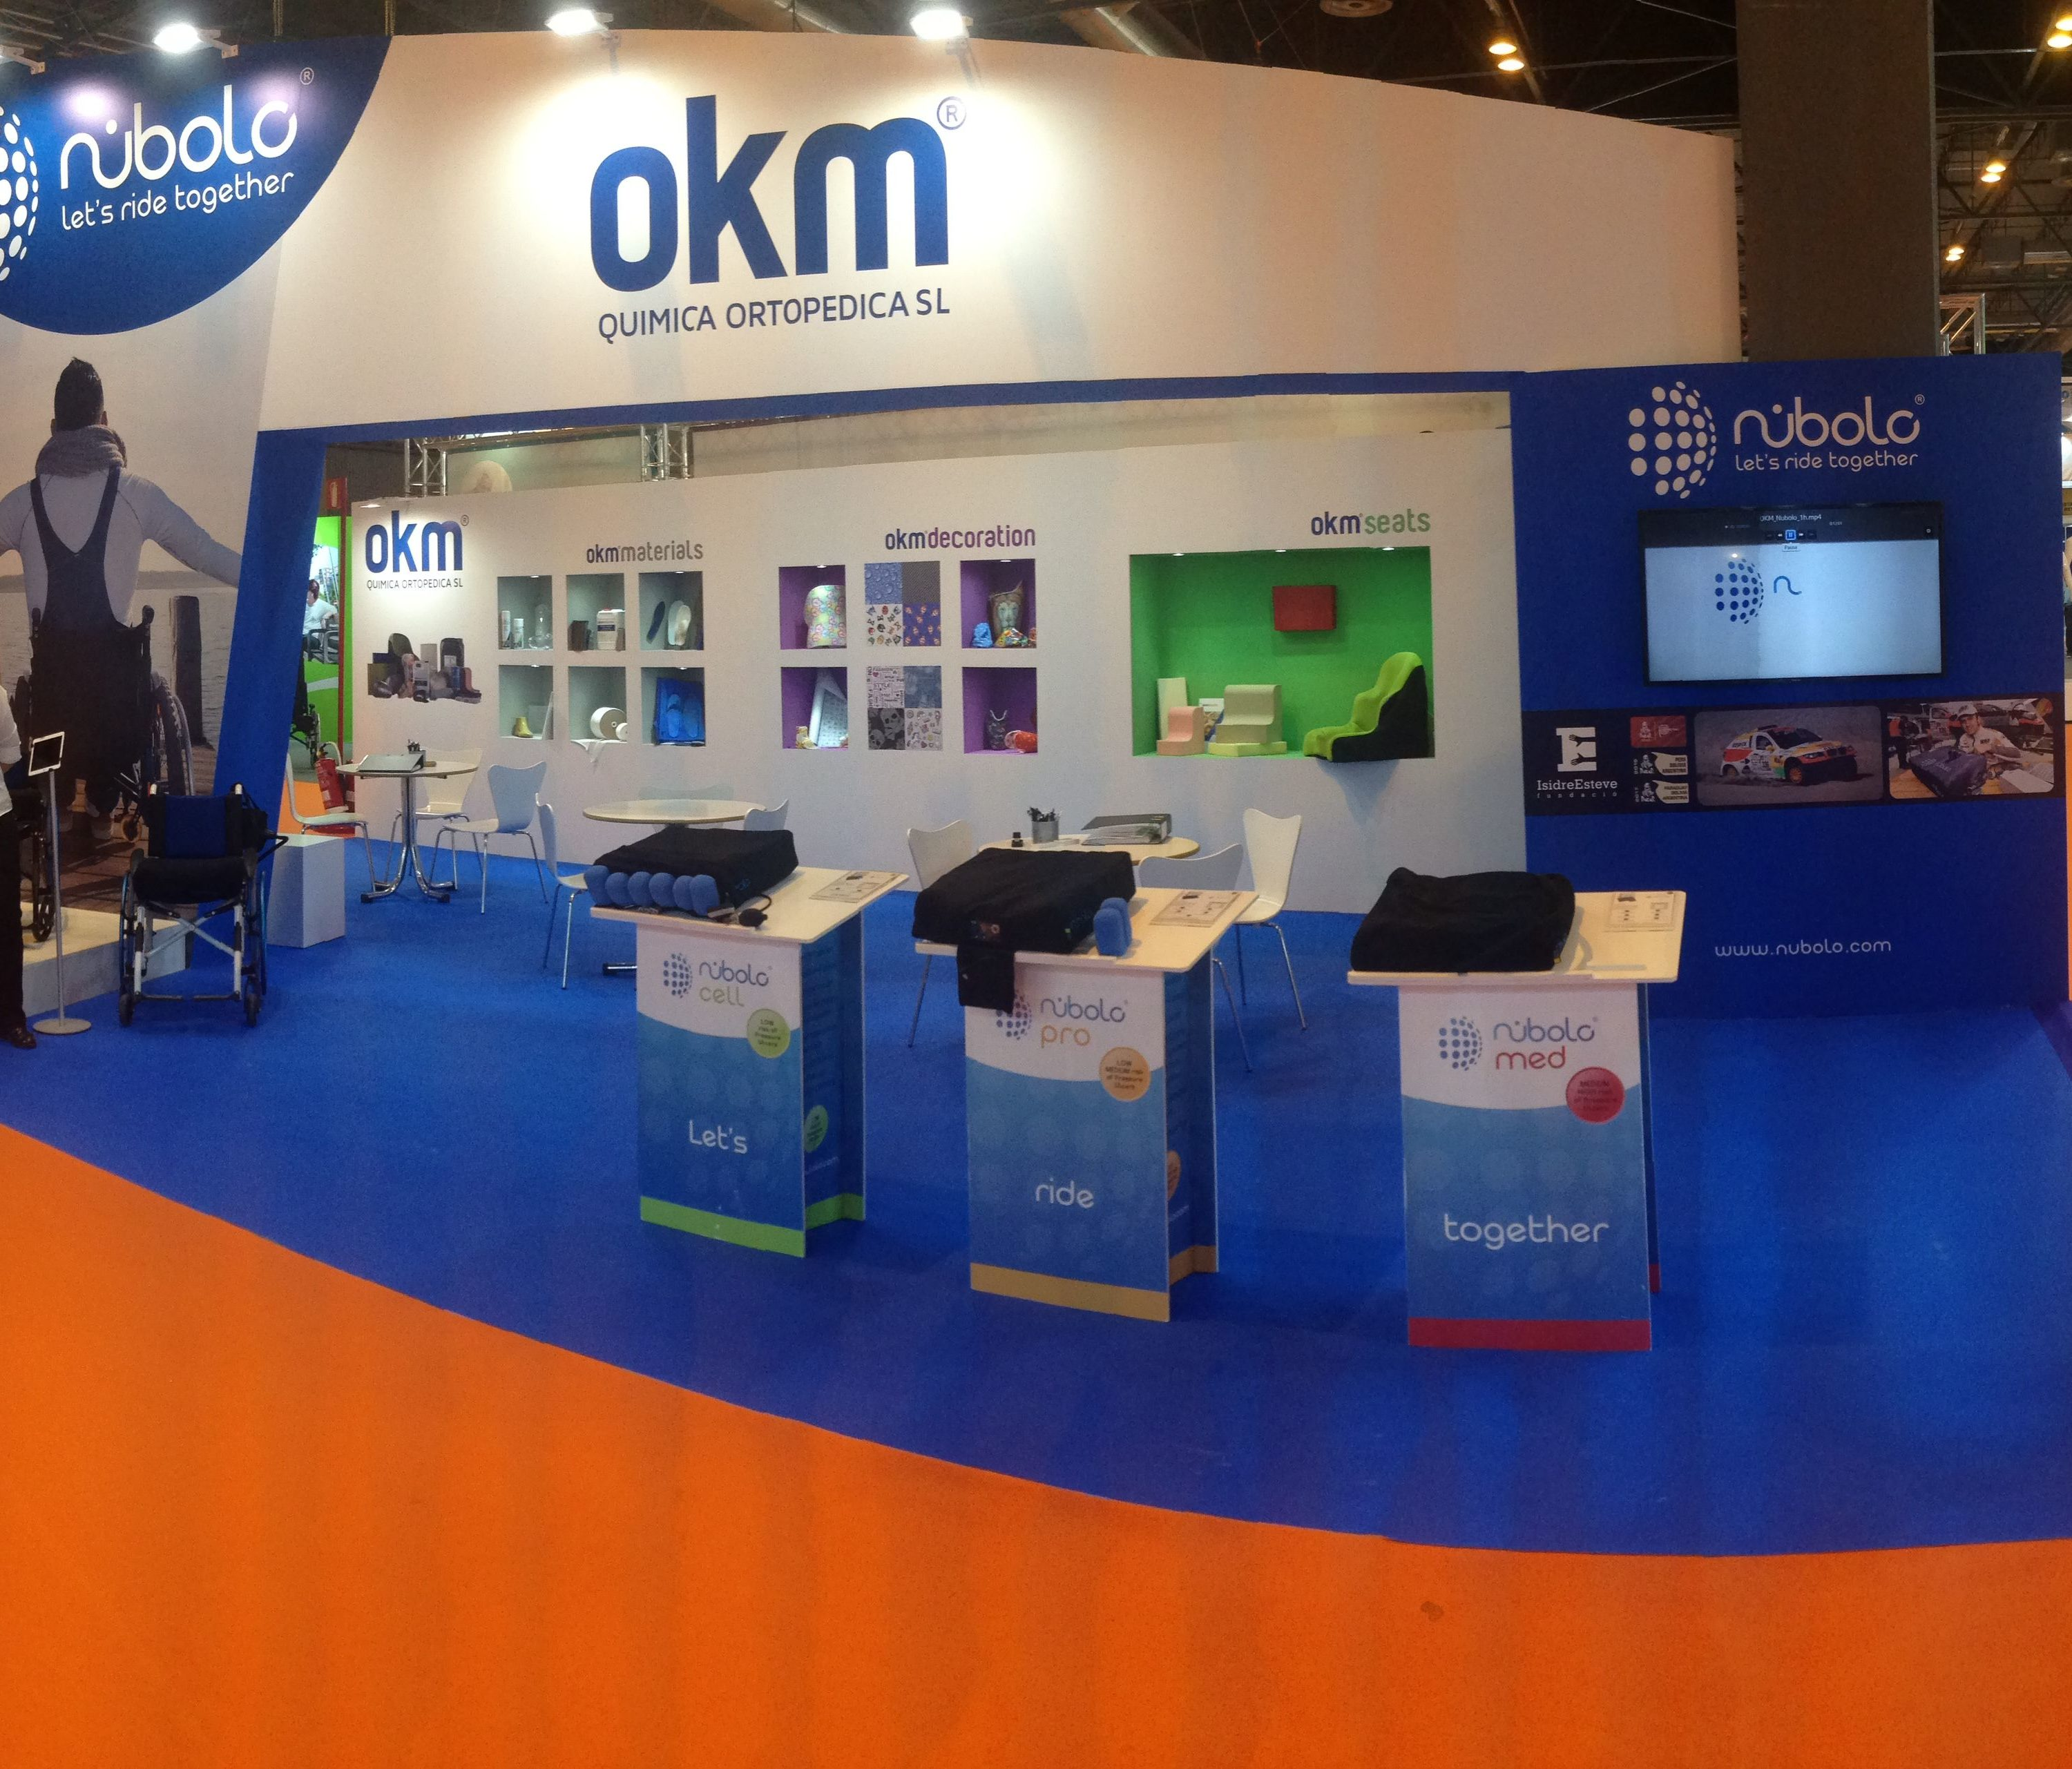 Nubolo, Orto Medical Care 2018 en Madrid